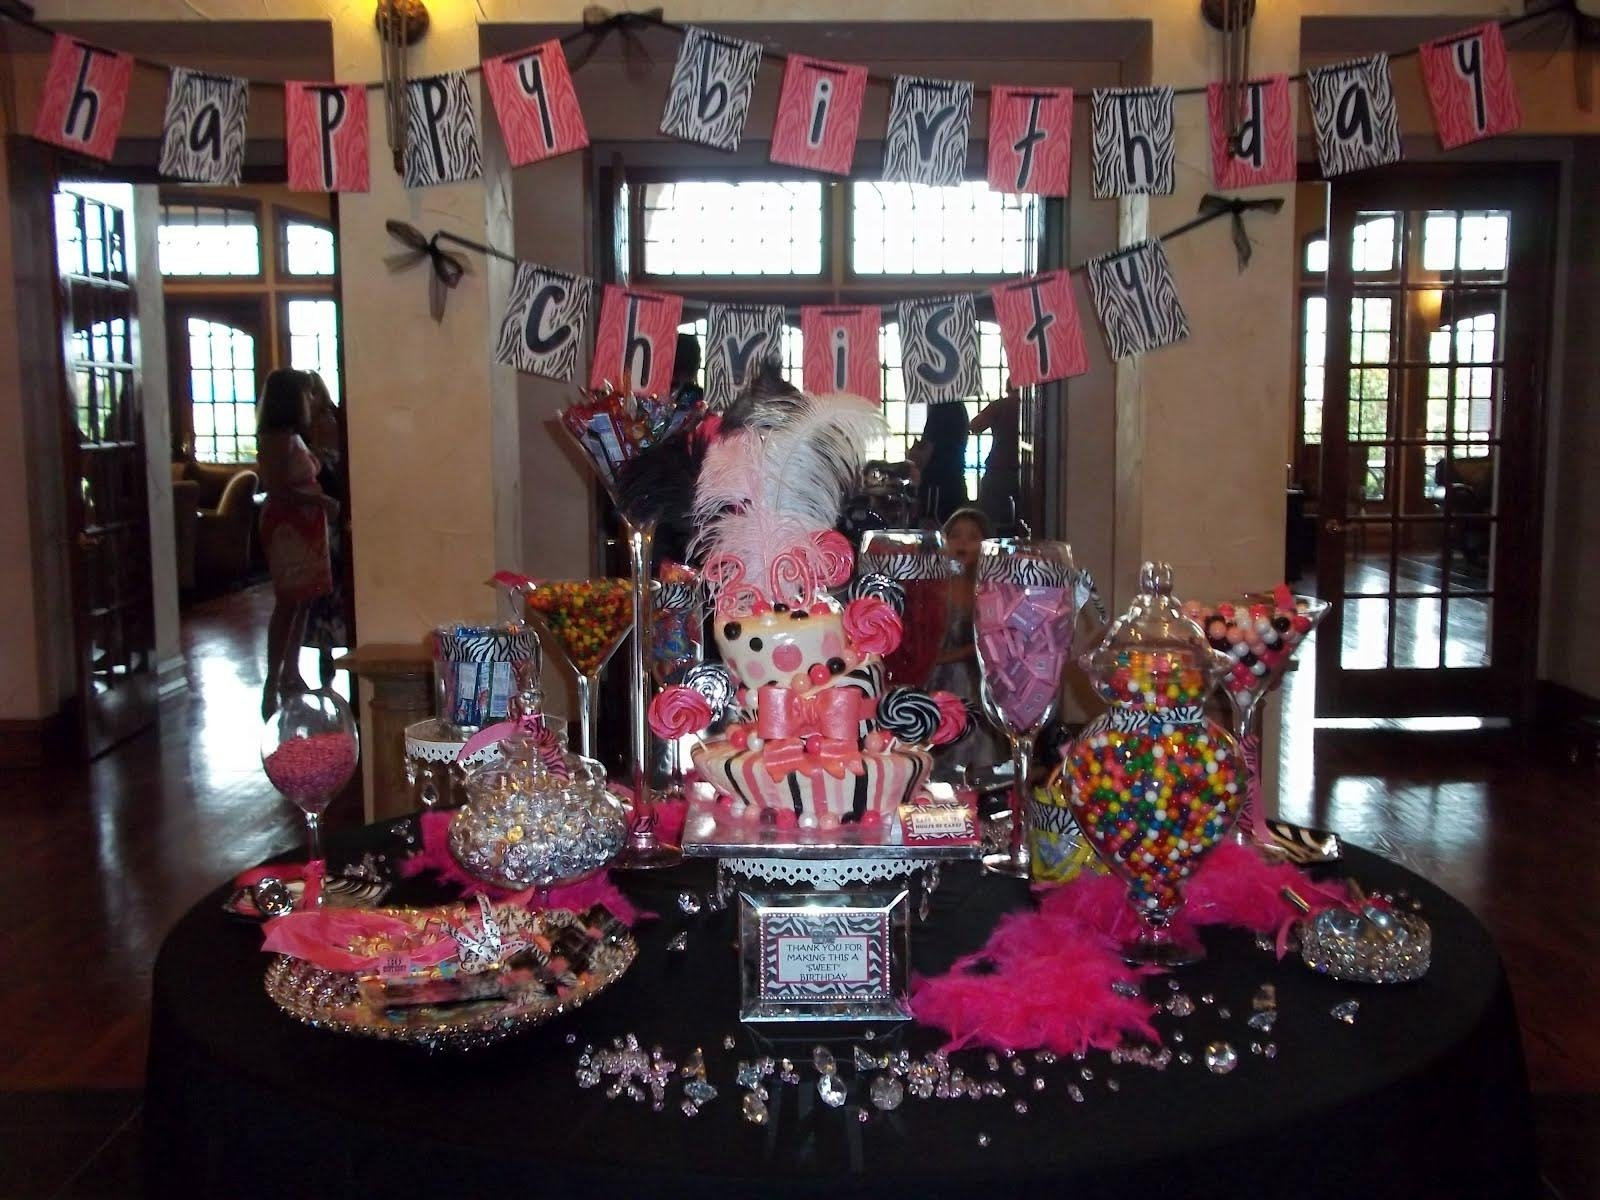 10 Great Birthday Party Ideas For Wife surprise birthday party ideas for wife home party ideas prom 2020